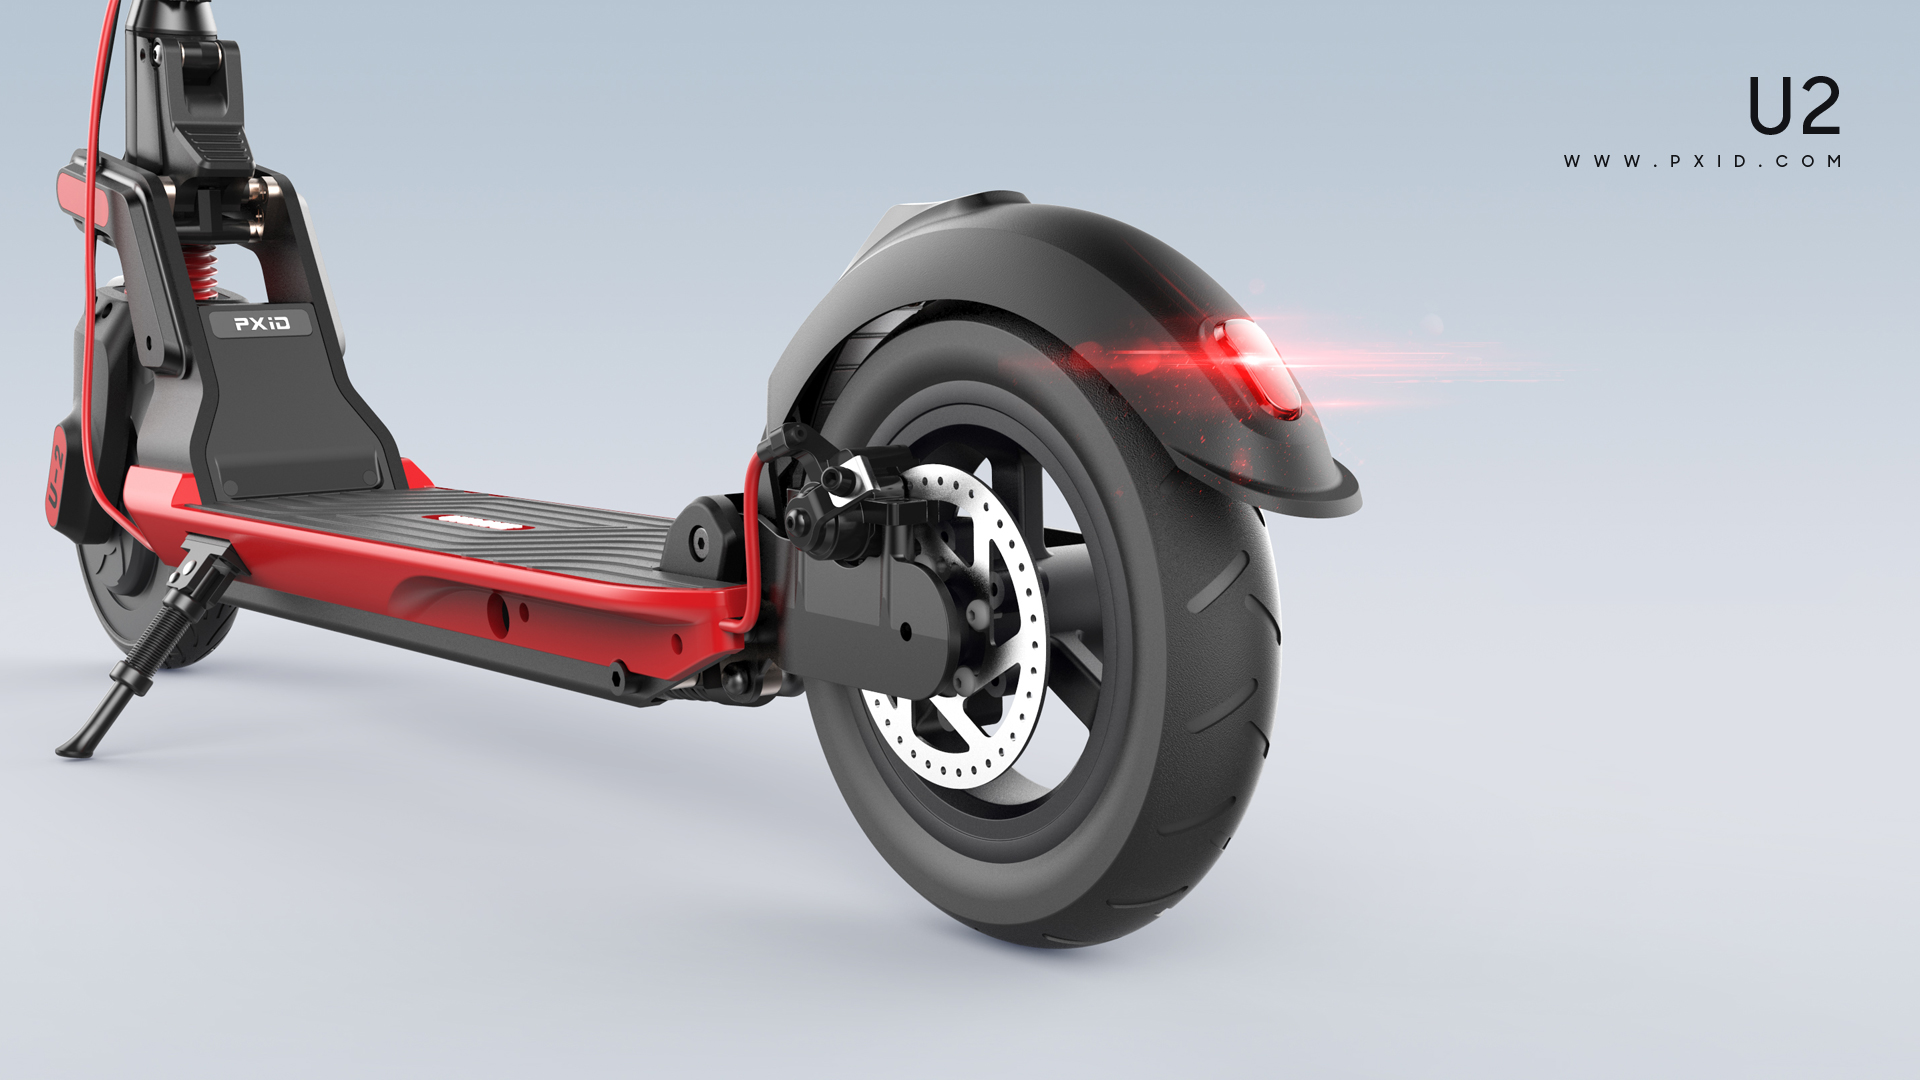 2019 folding two-wheel electric scooter design